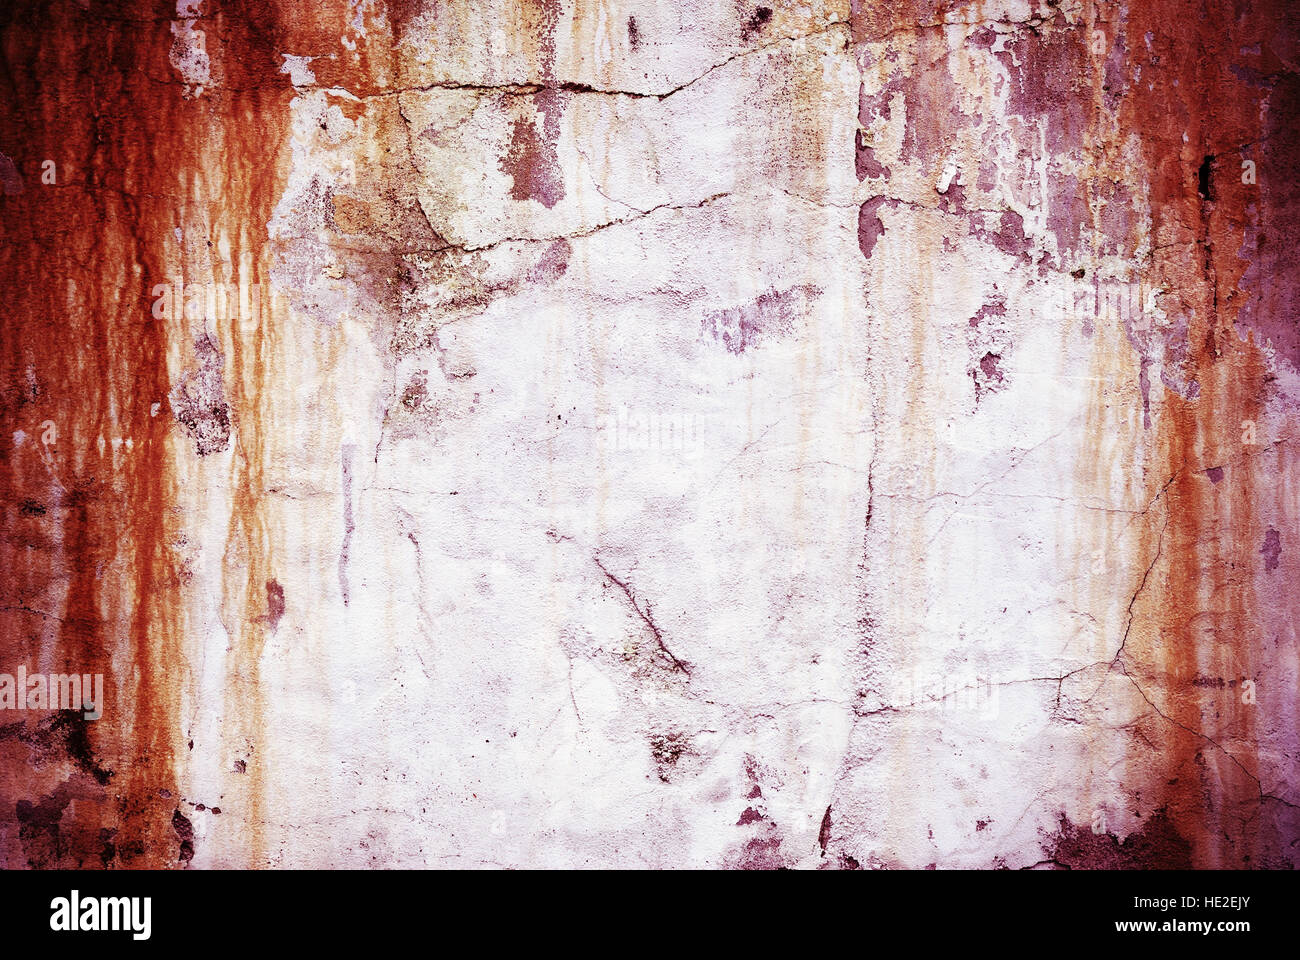 Old Weathered Rusty Wall Texture Stock Photo Alamy ✓ free for commercial use ✓ high quality images. https www alamy com stock photo old weathered rusty wall texture 129133171 html